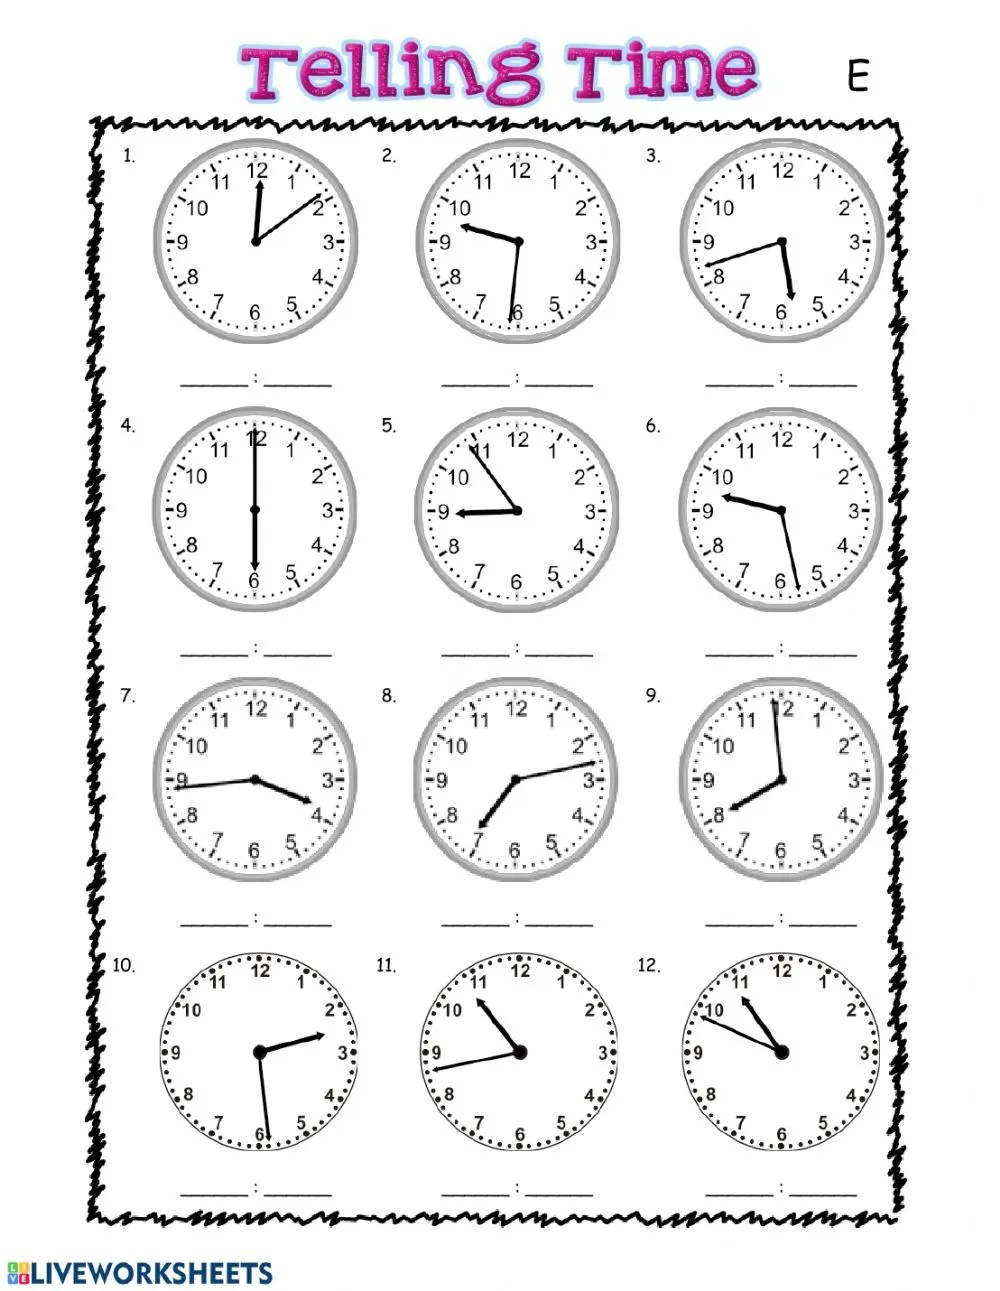 hight resolution of Telling Time interactive exercise for grade 3